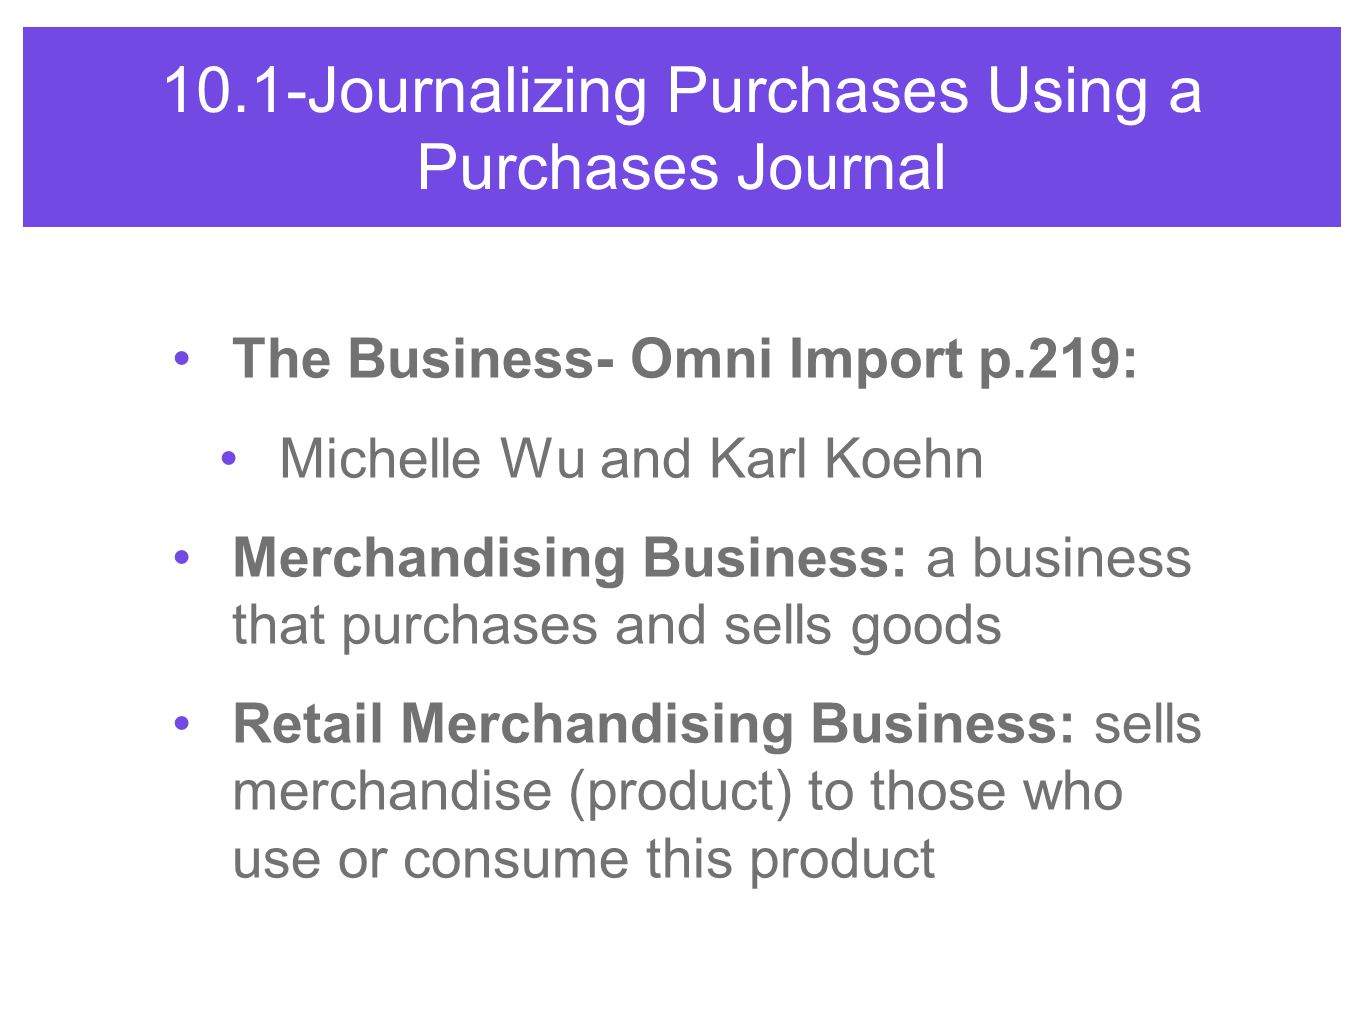 10.1-Journalizing Purchases Using a Purchases Journal